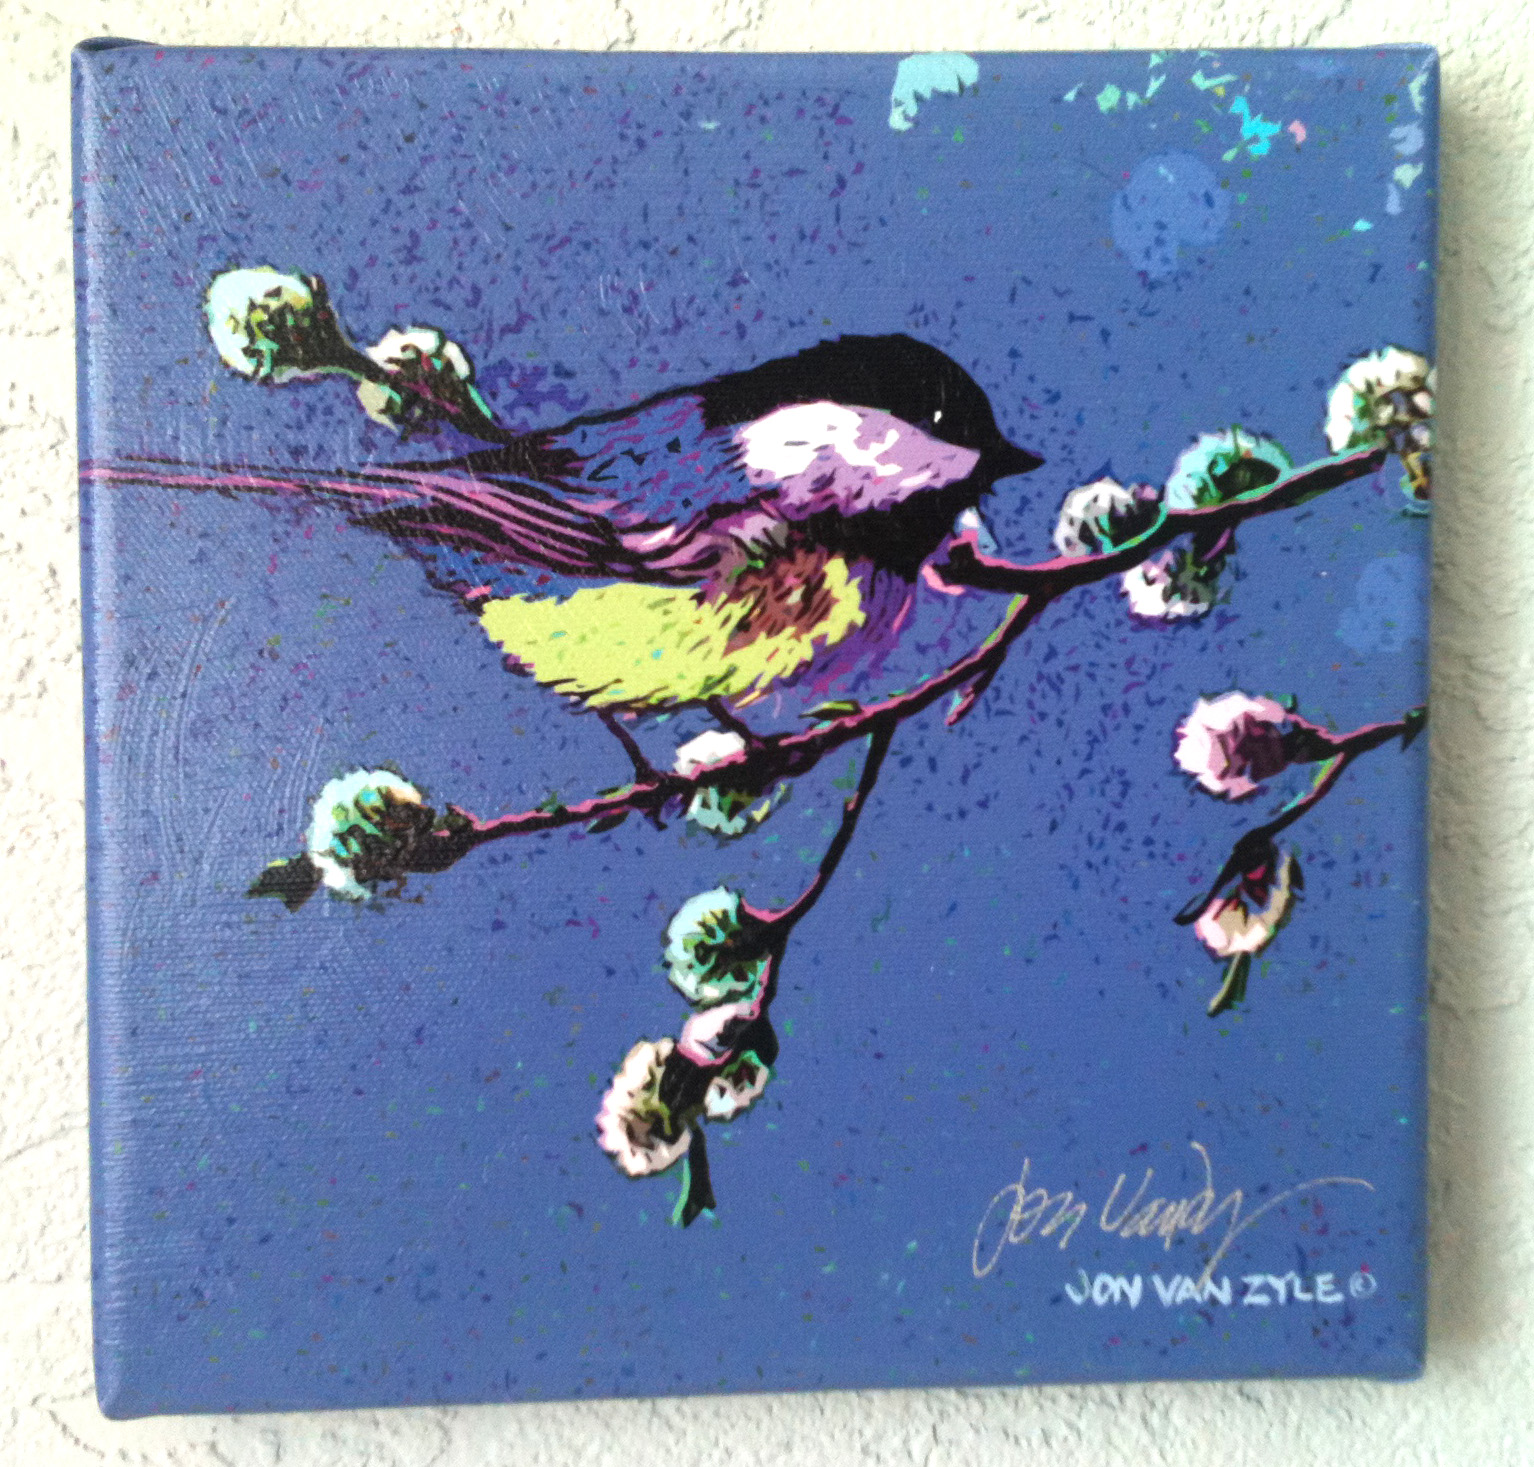 Color art printing anchorage - Printing Canvas For Fine Art Reproductions Ravenink Anchorage